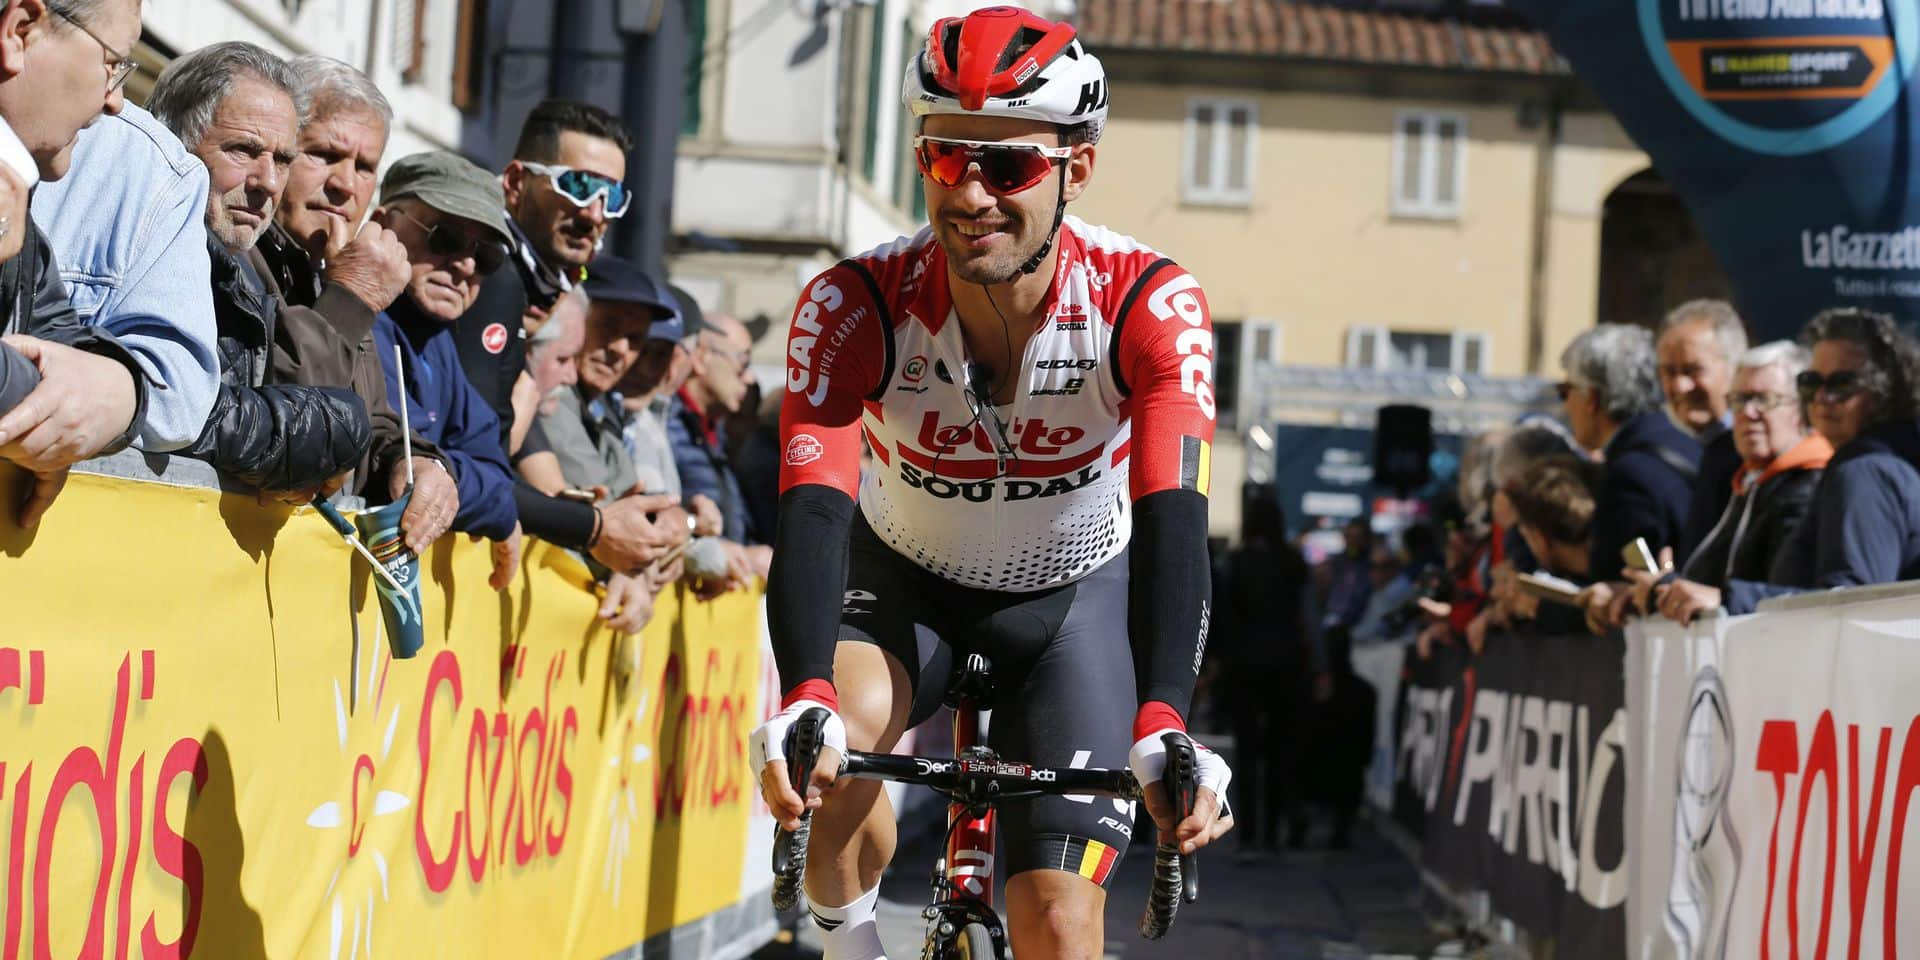 Belgian Victor Campenaerts of Lotto Soudal pictured at stage 2 of the Tirreno-Adriatico cycling race, from Camaiore to Pomarance (195 km), Italy, Thursday 14 March 2019. BELGA PHOTO YUZURU SUNADA - FRANCE OUT